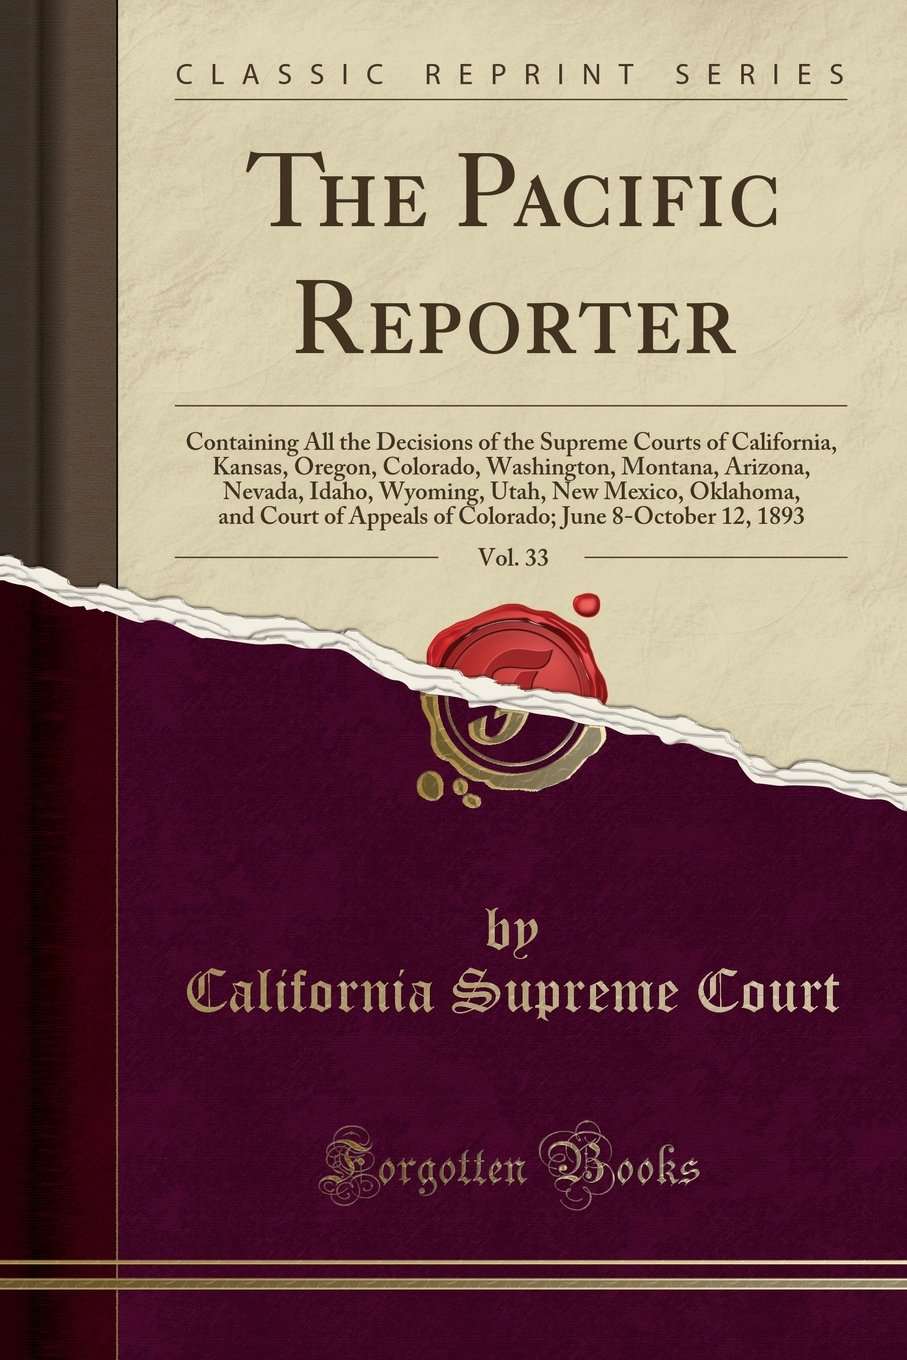 The Pacific Reporter, Vol. 33: Containing All the Decisions of the Supreme Courts of California, Kansas, Oregon, Colorado, Washington, Montana, ... of Appeals of Colorado; June 8-October 1 pdf